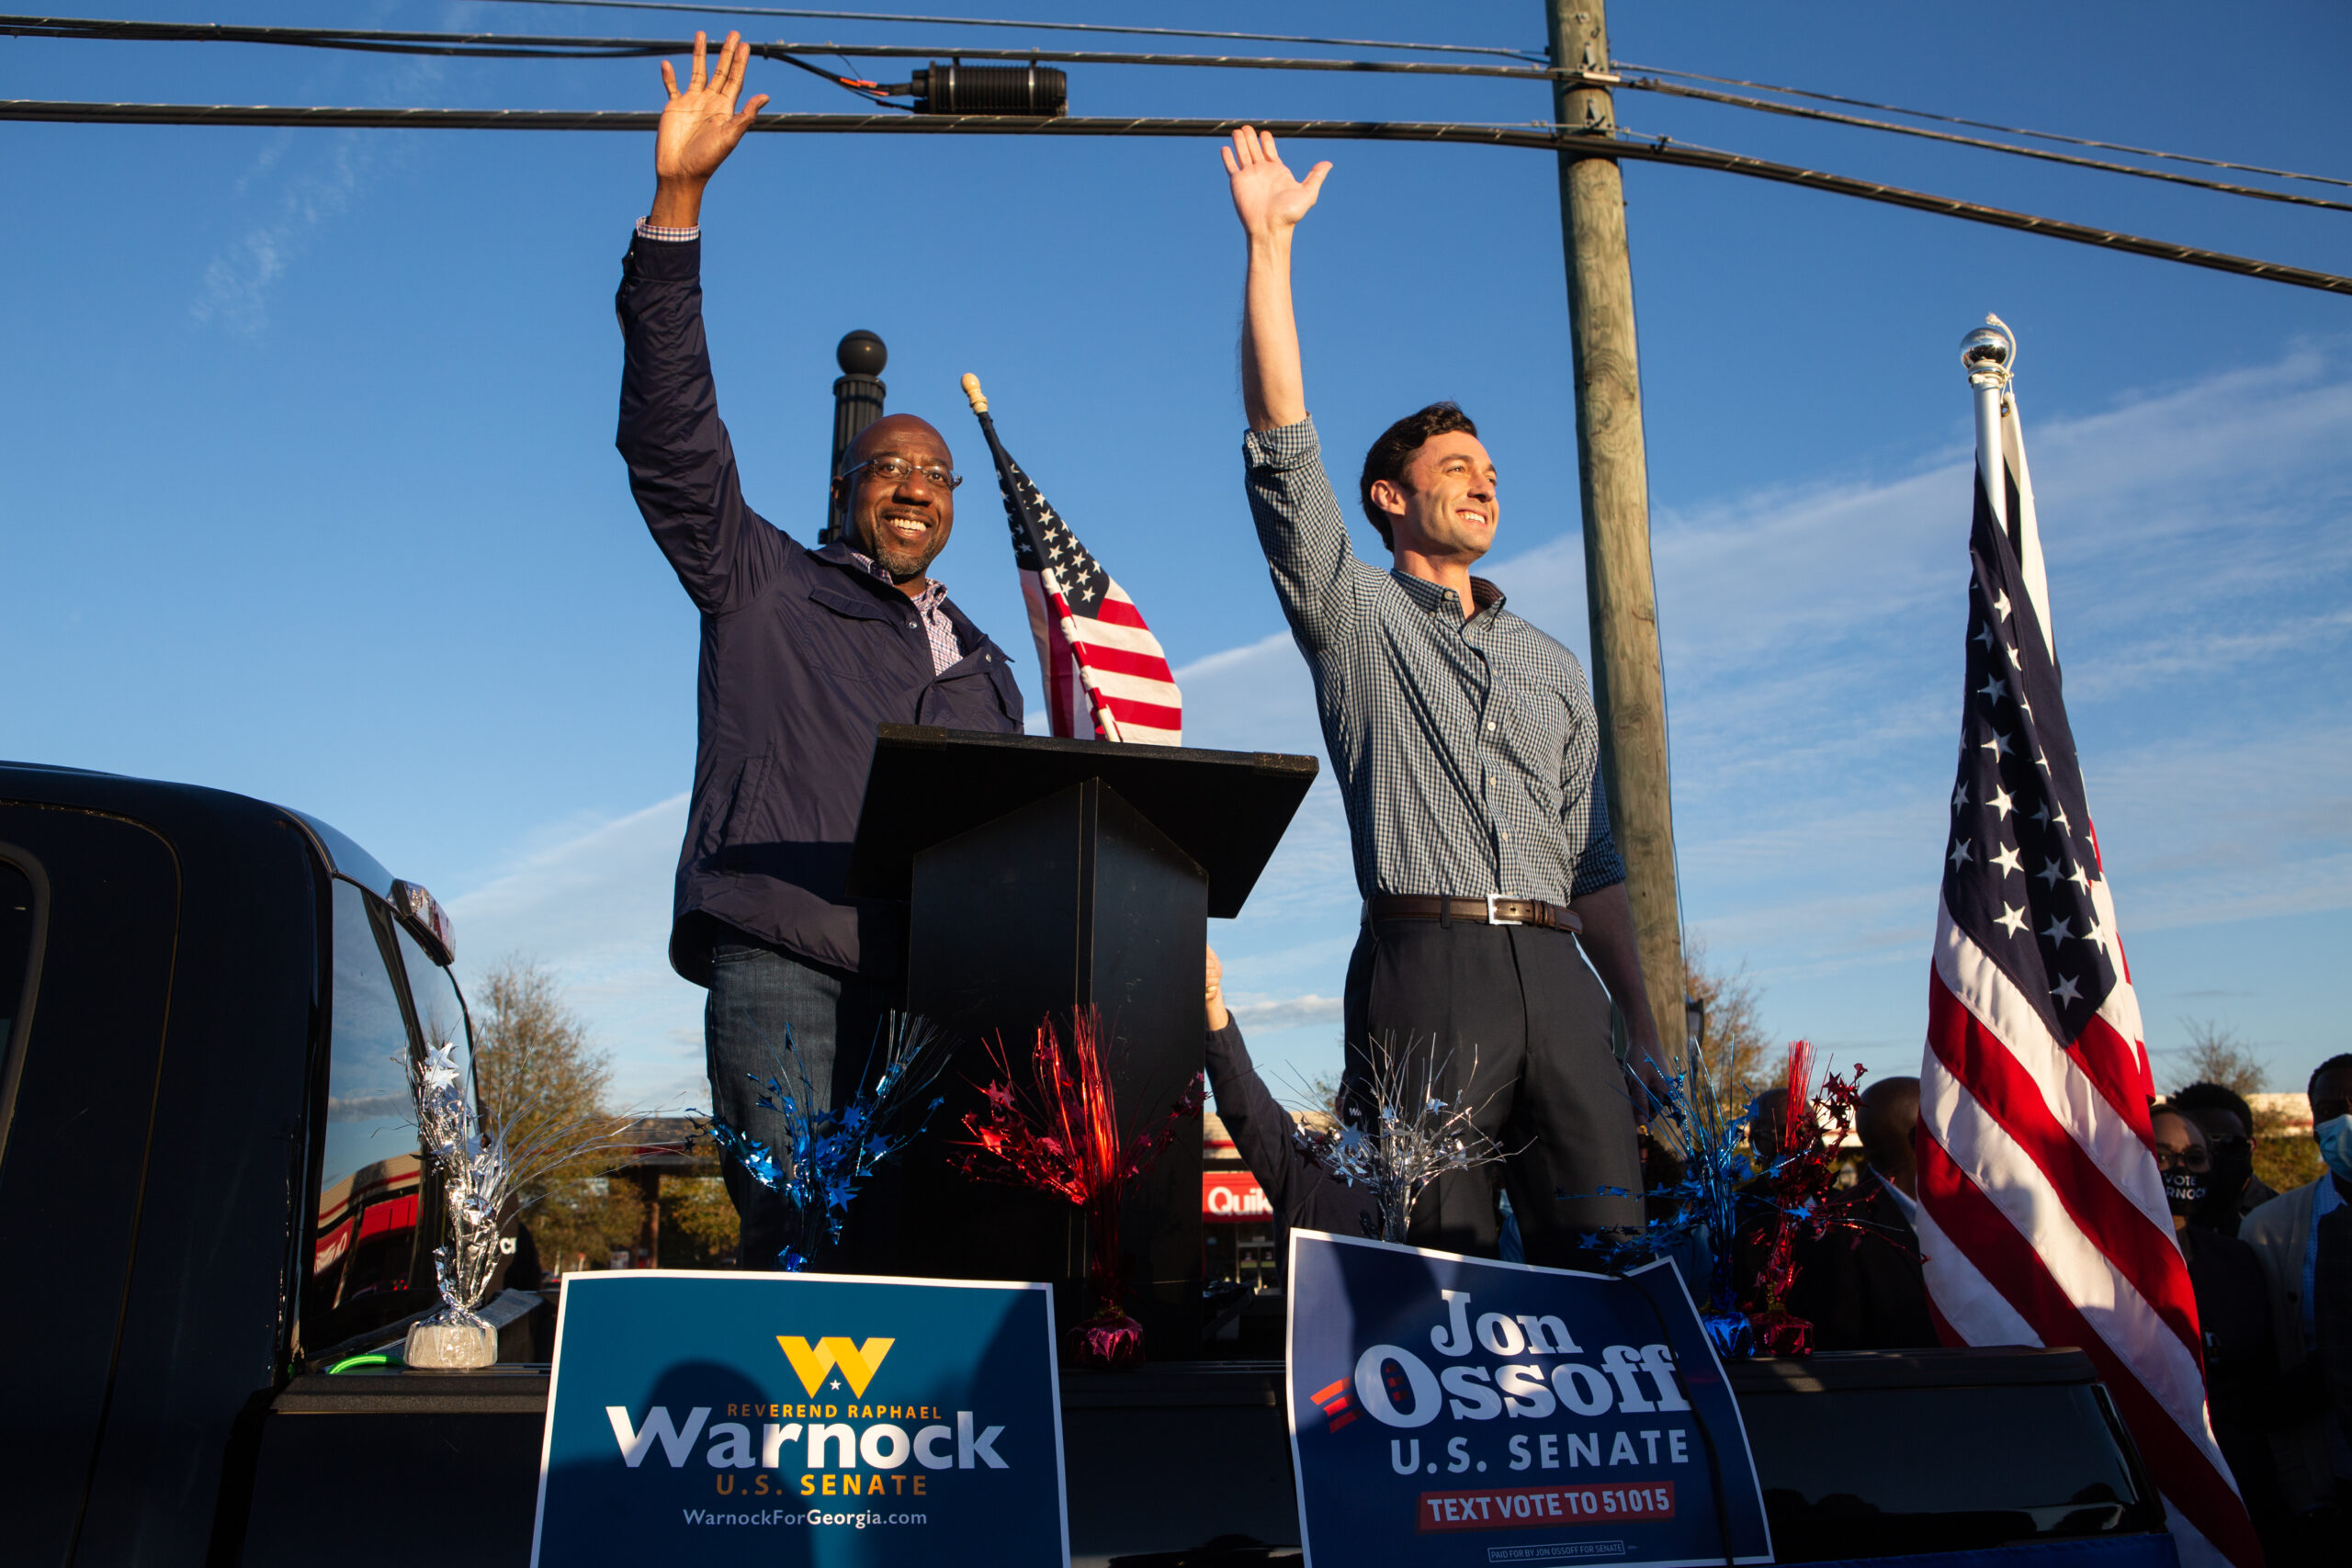 Democratic Senate candidates Raphael Warnock (left) and Jon Ossoff of Georgia wave to supporters during a rally on Nov. 15, 2020 in Marietta, Georgia. Ossoff and Warnock face incumbent U.S. Sens. David Purdue (R-Georgia) and Kelly Loeffler (R-Georgia) respectively in a runoff election Jan. 5. Credit: Jessica McGowan/Getty Images